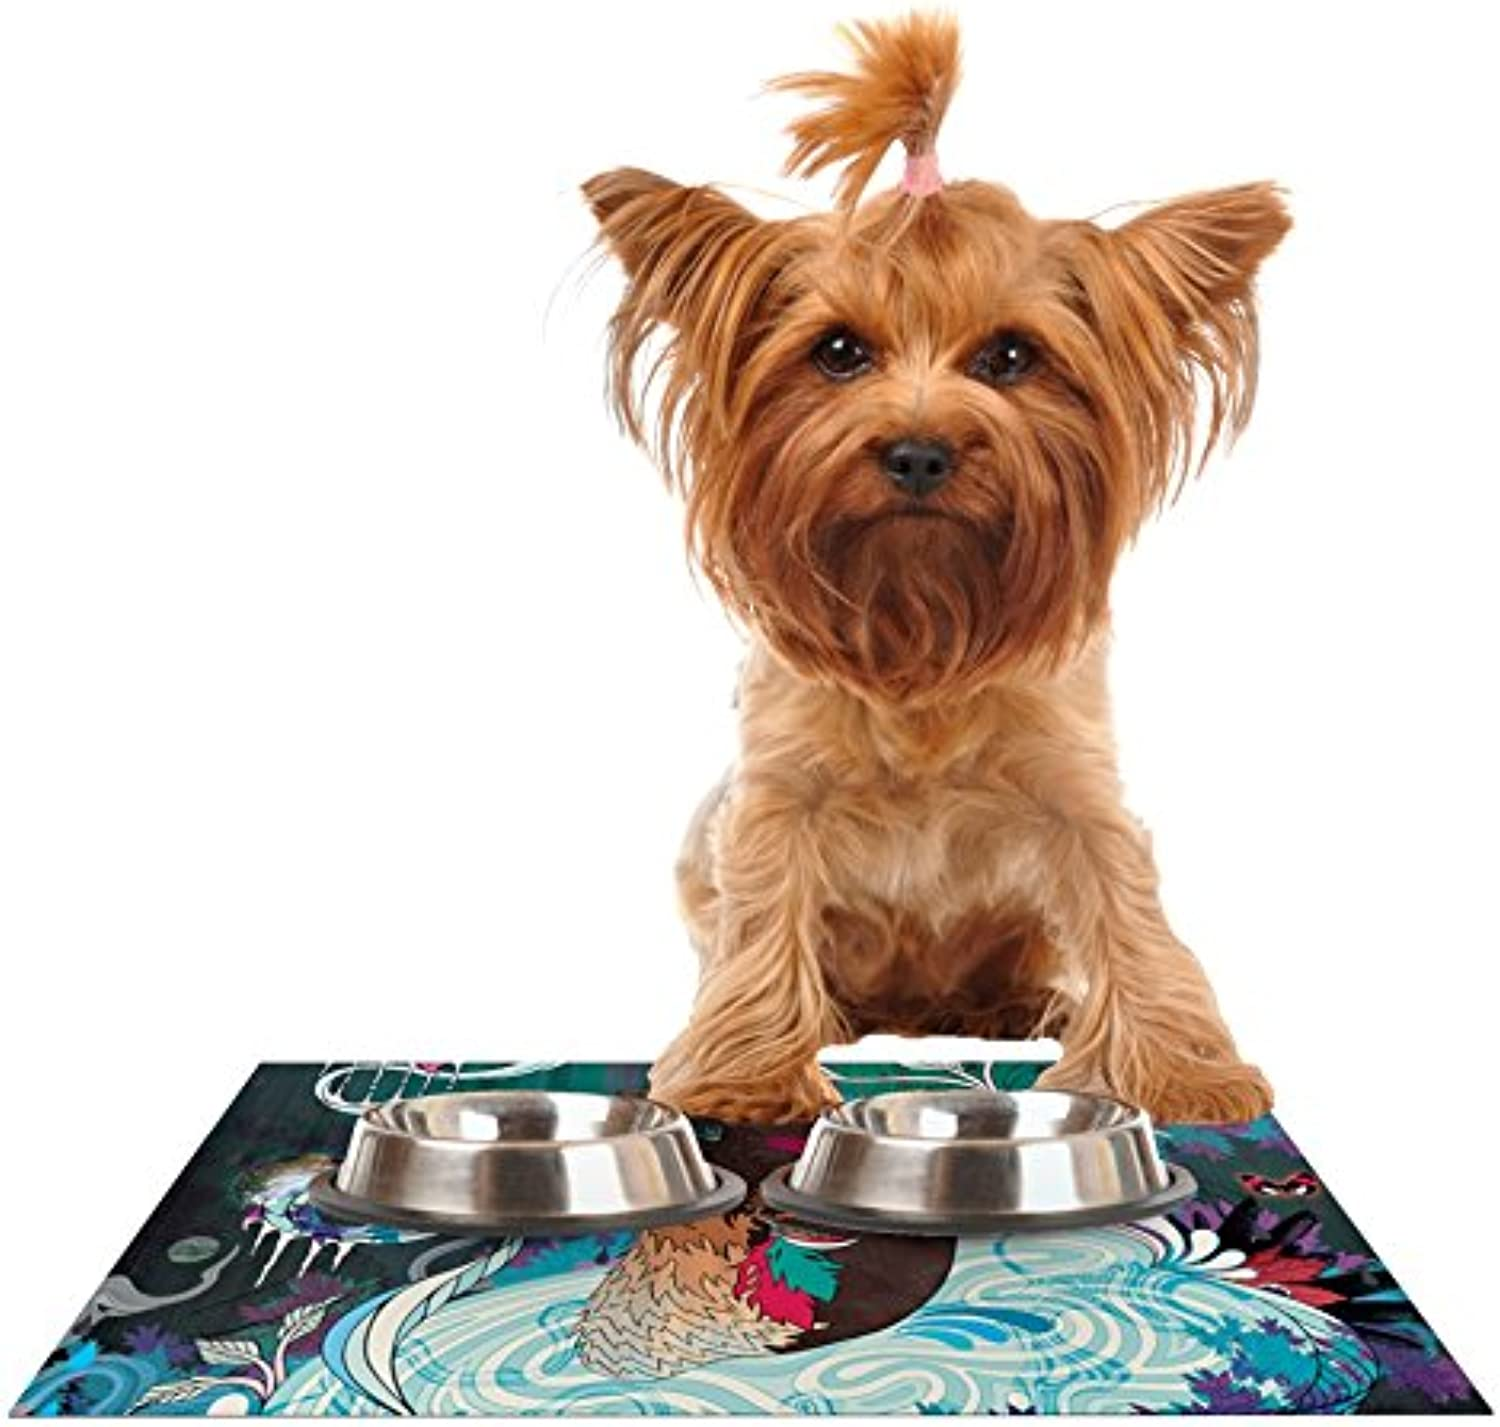 Kess InHouse Mat Miller Delicate Distraction  Otter Teal Feeding Mat for Pet Bowls, 24 by 15Inch